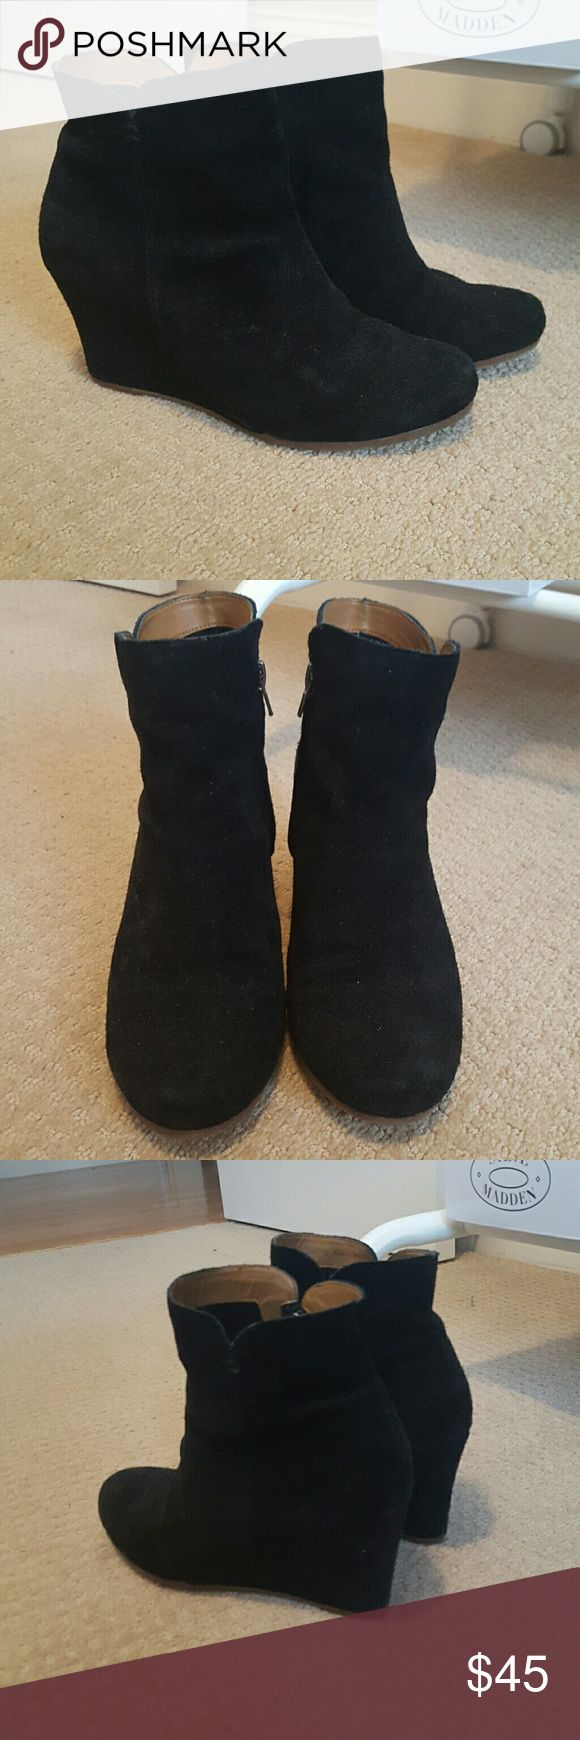 REAL SUEDE Dolce Vita booties Black suede wedge pump. Gorgeous for winter & transitional weather. Timeless & chic. Barely worn. Dolce Vita Shoes Ankle Boots & Booties